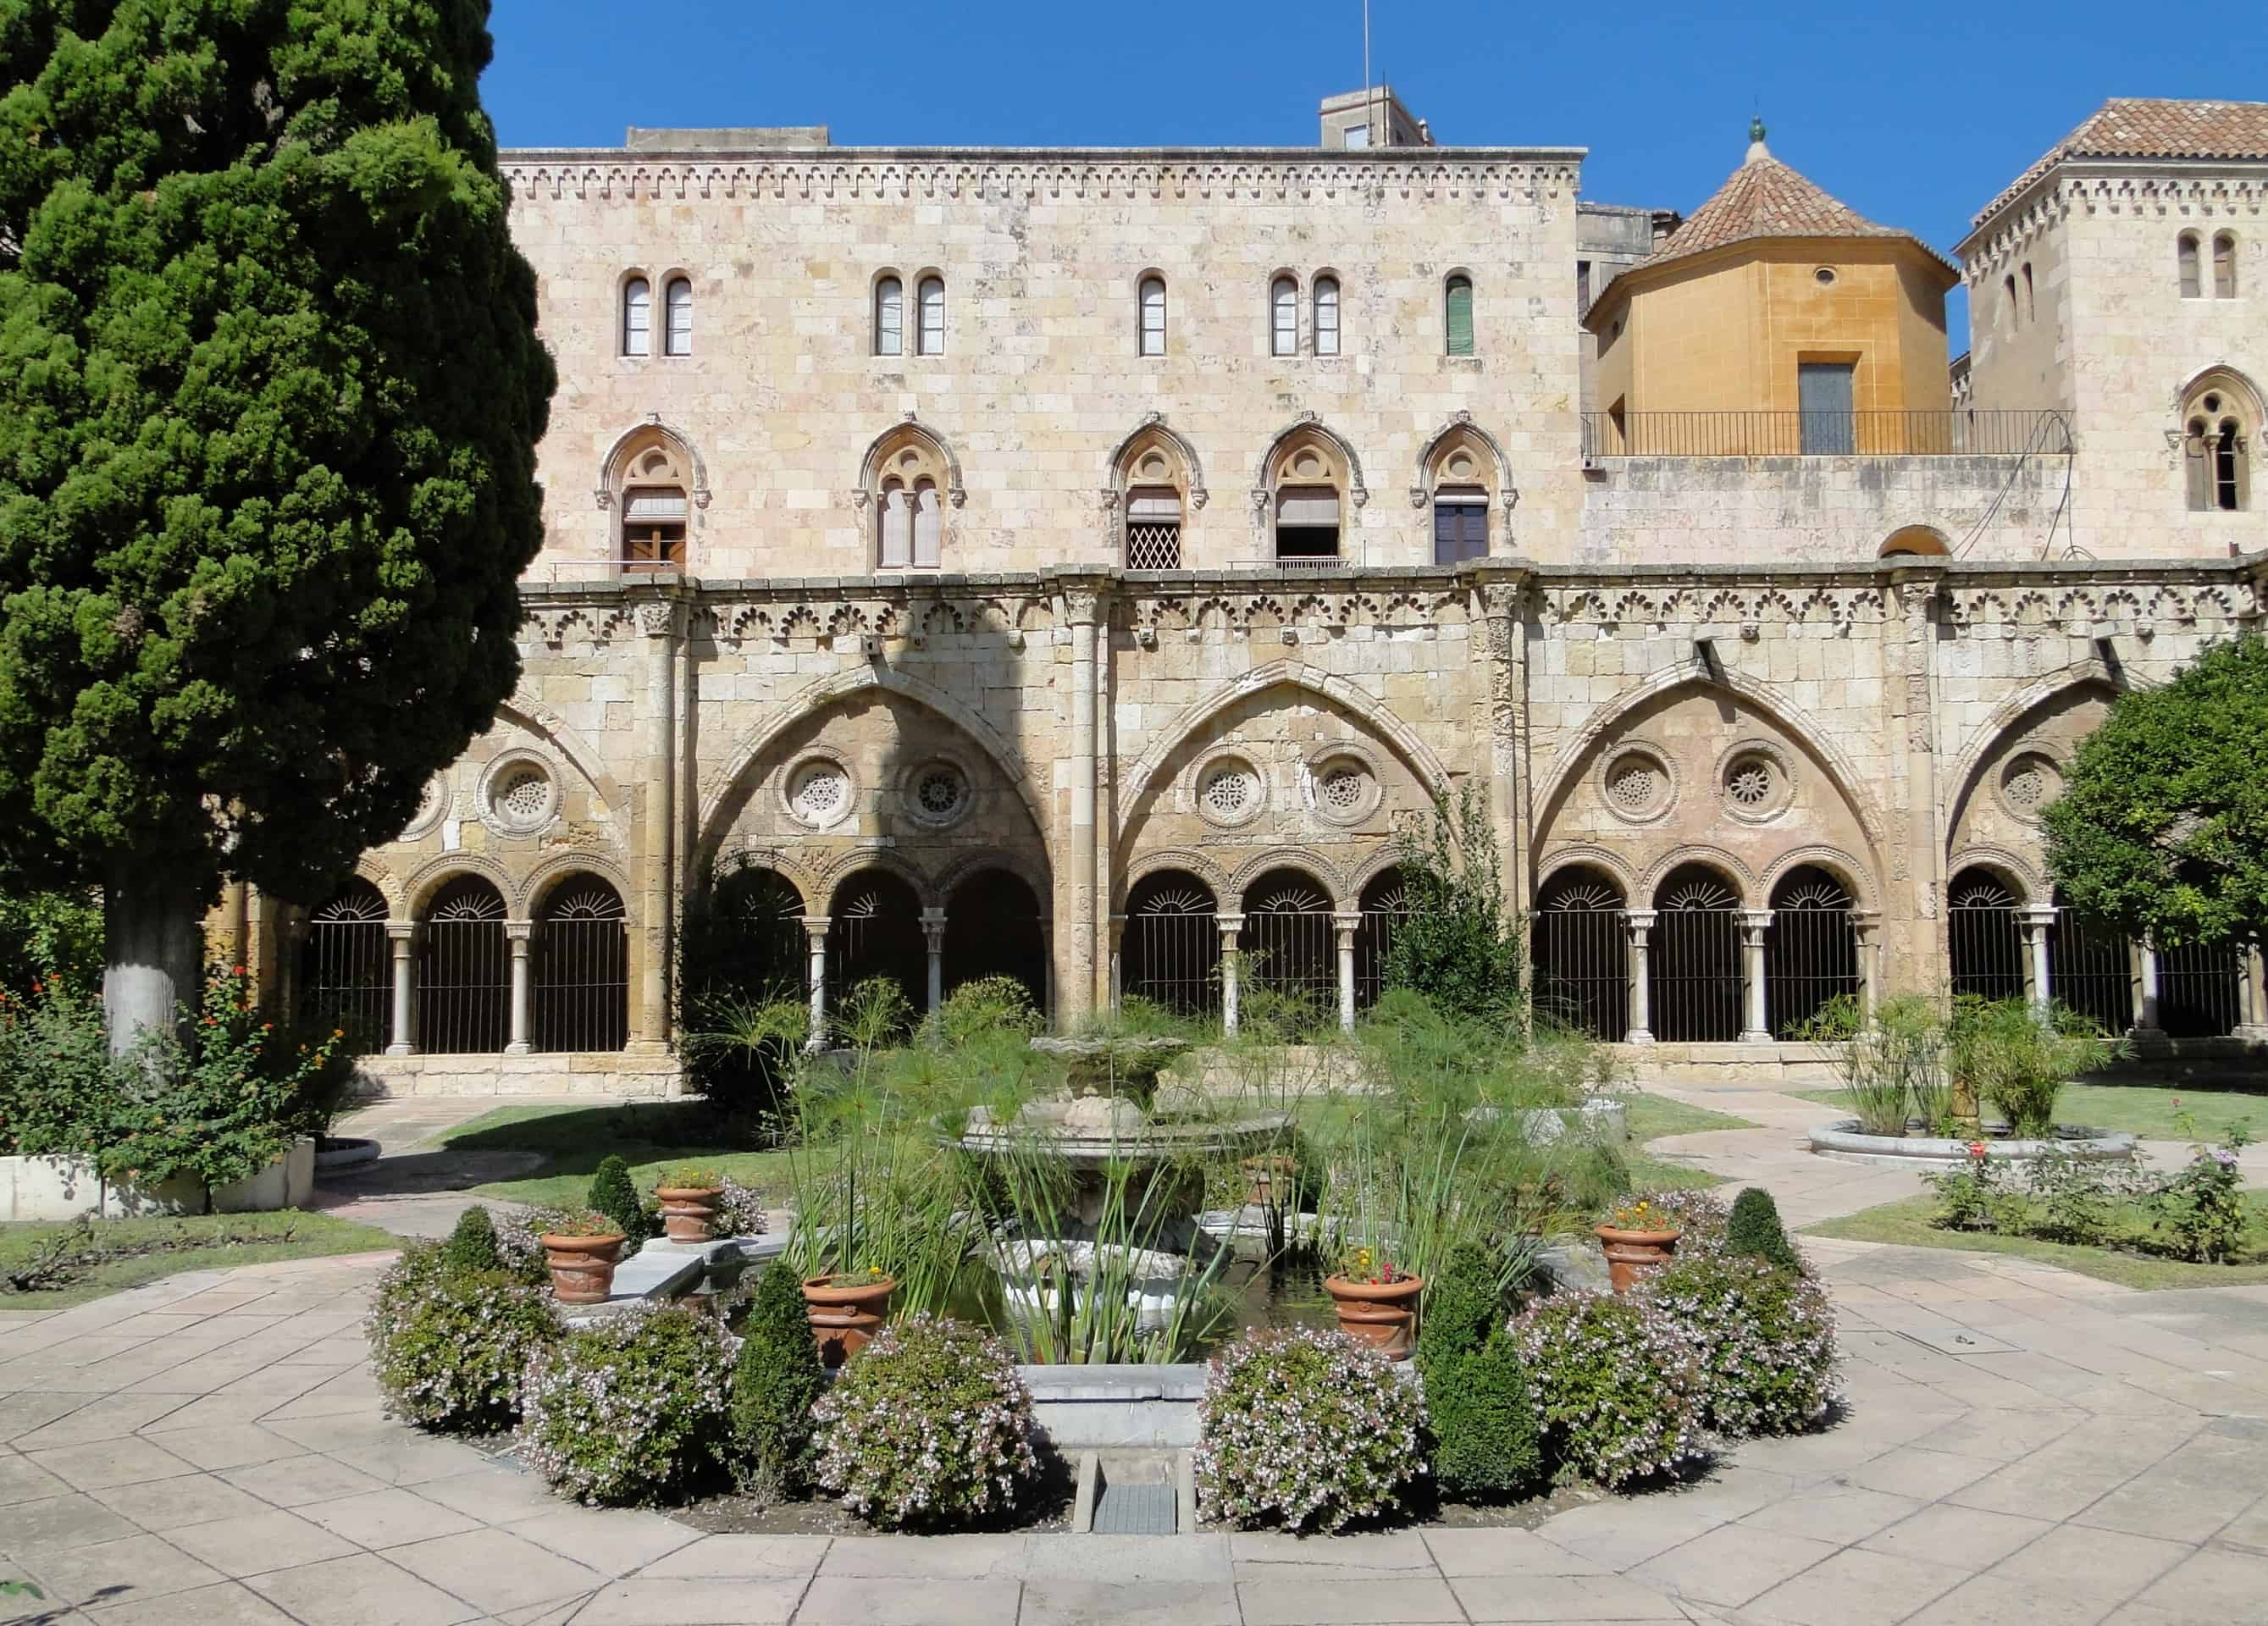 Cloister of the Cathedral of Tarragona